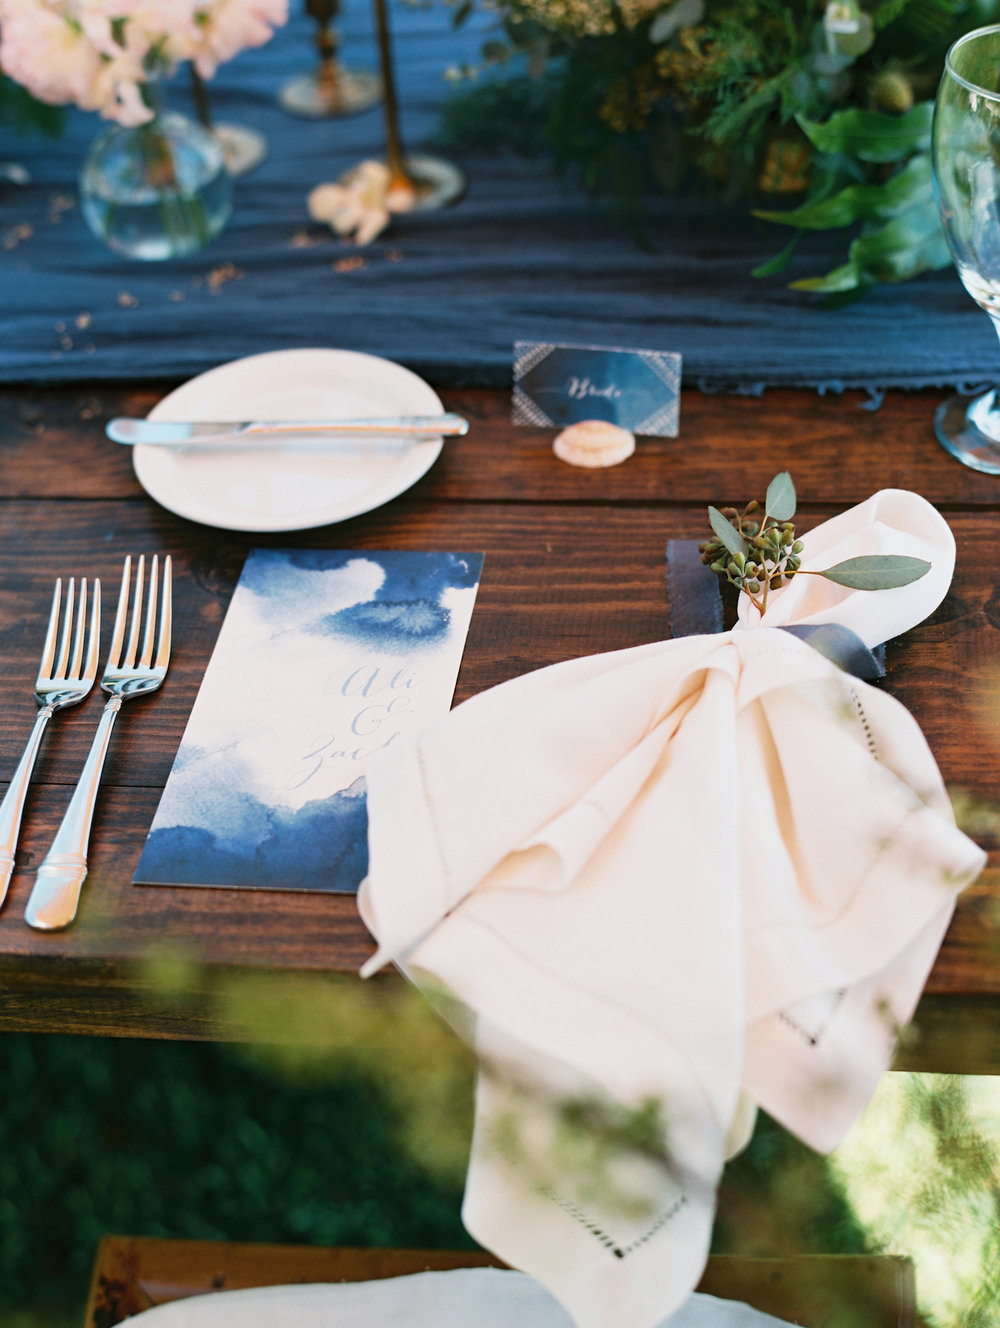 Custom menus, place cards; as featured in The Knot winter 2016 issue